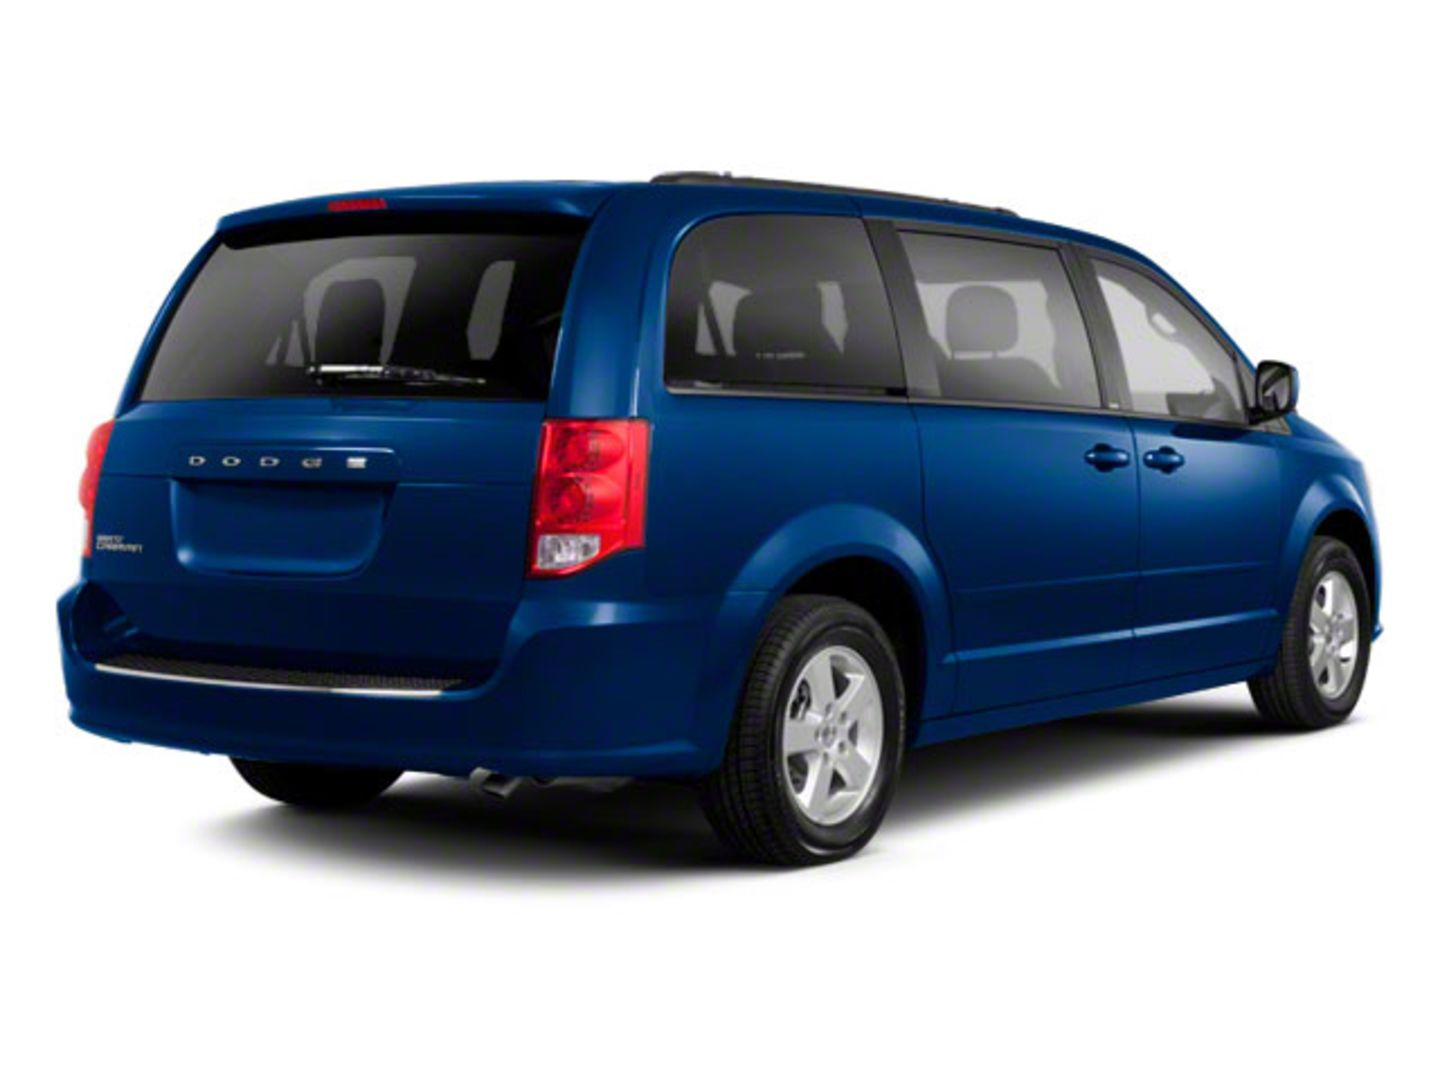 2012 Dodge Grand Caravan SE for sale in St. Albert, Alberta